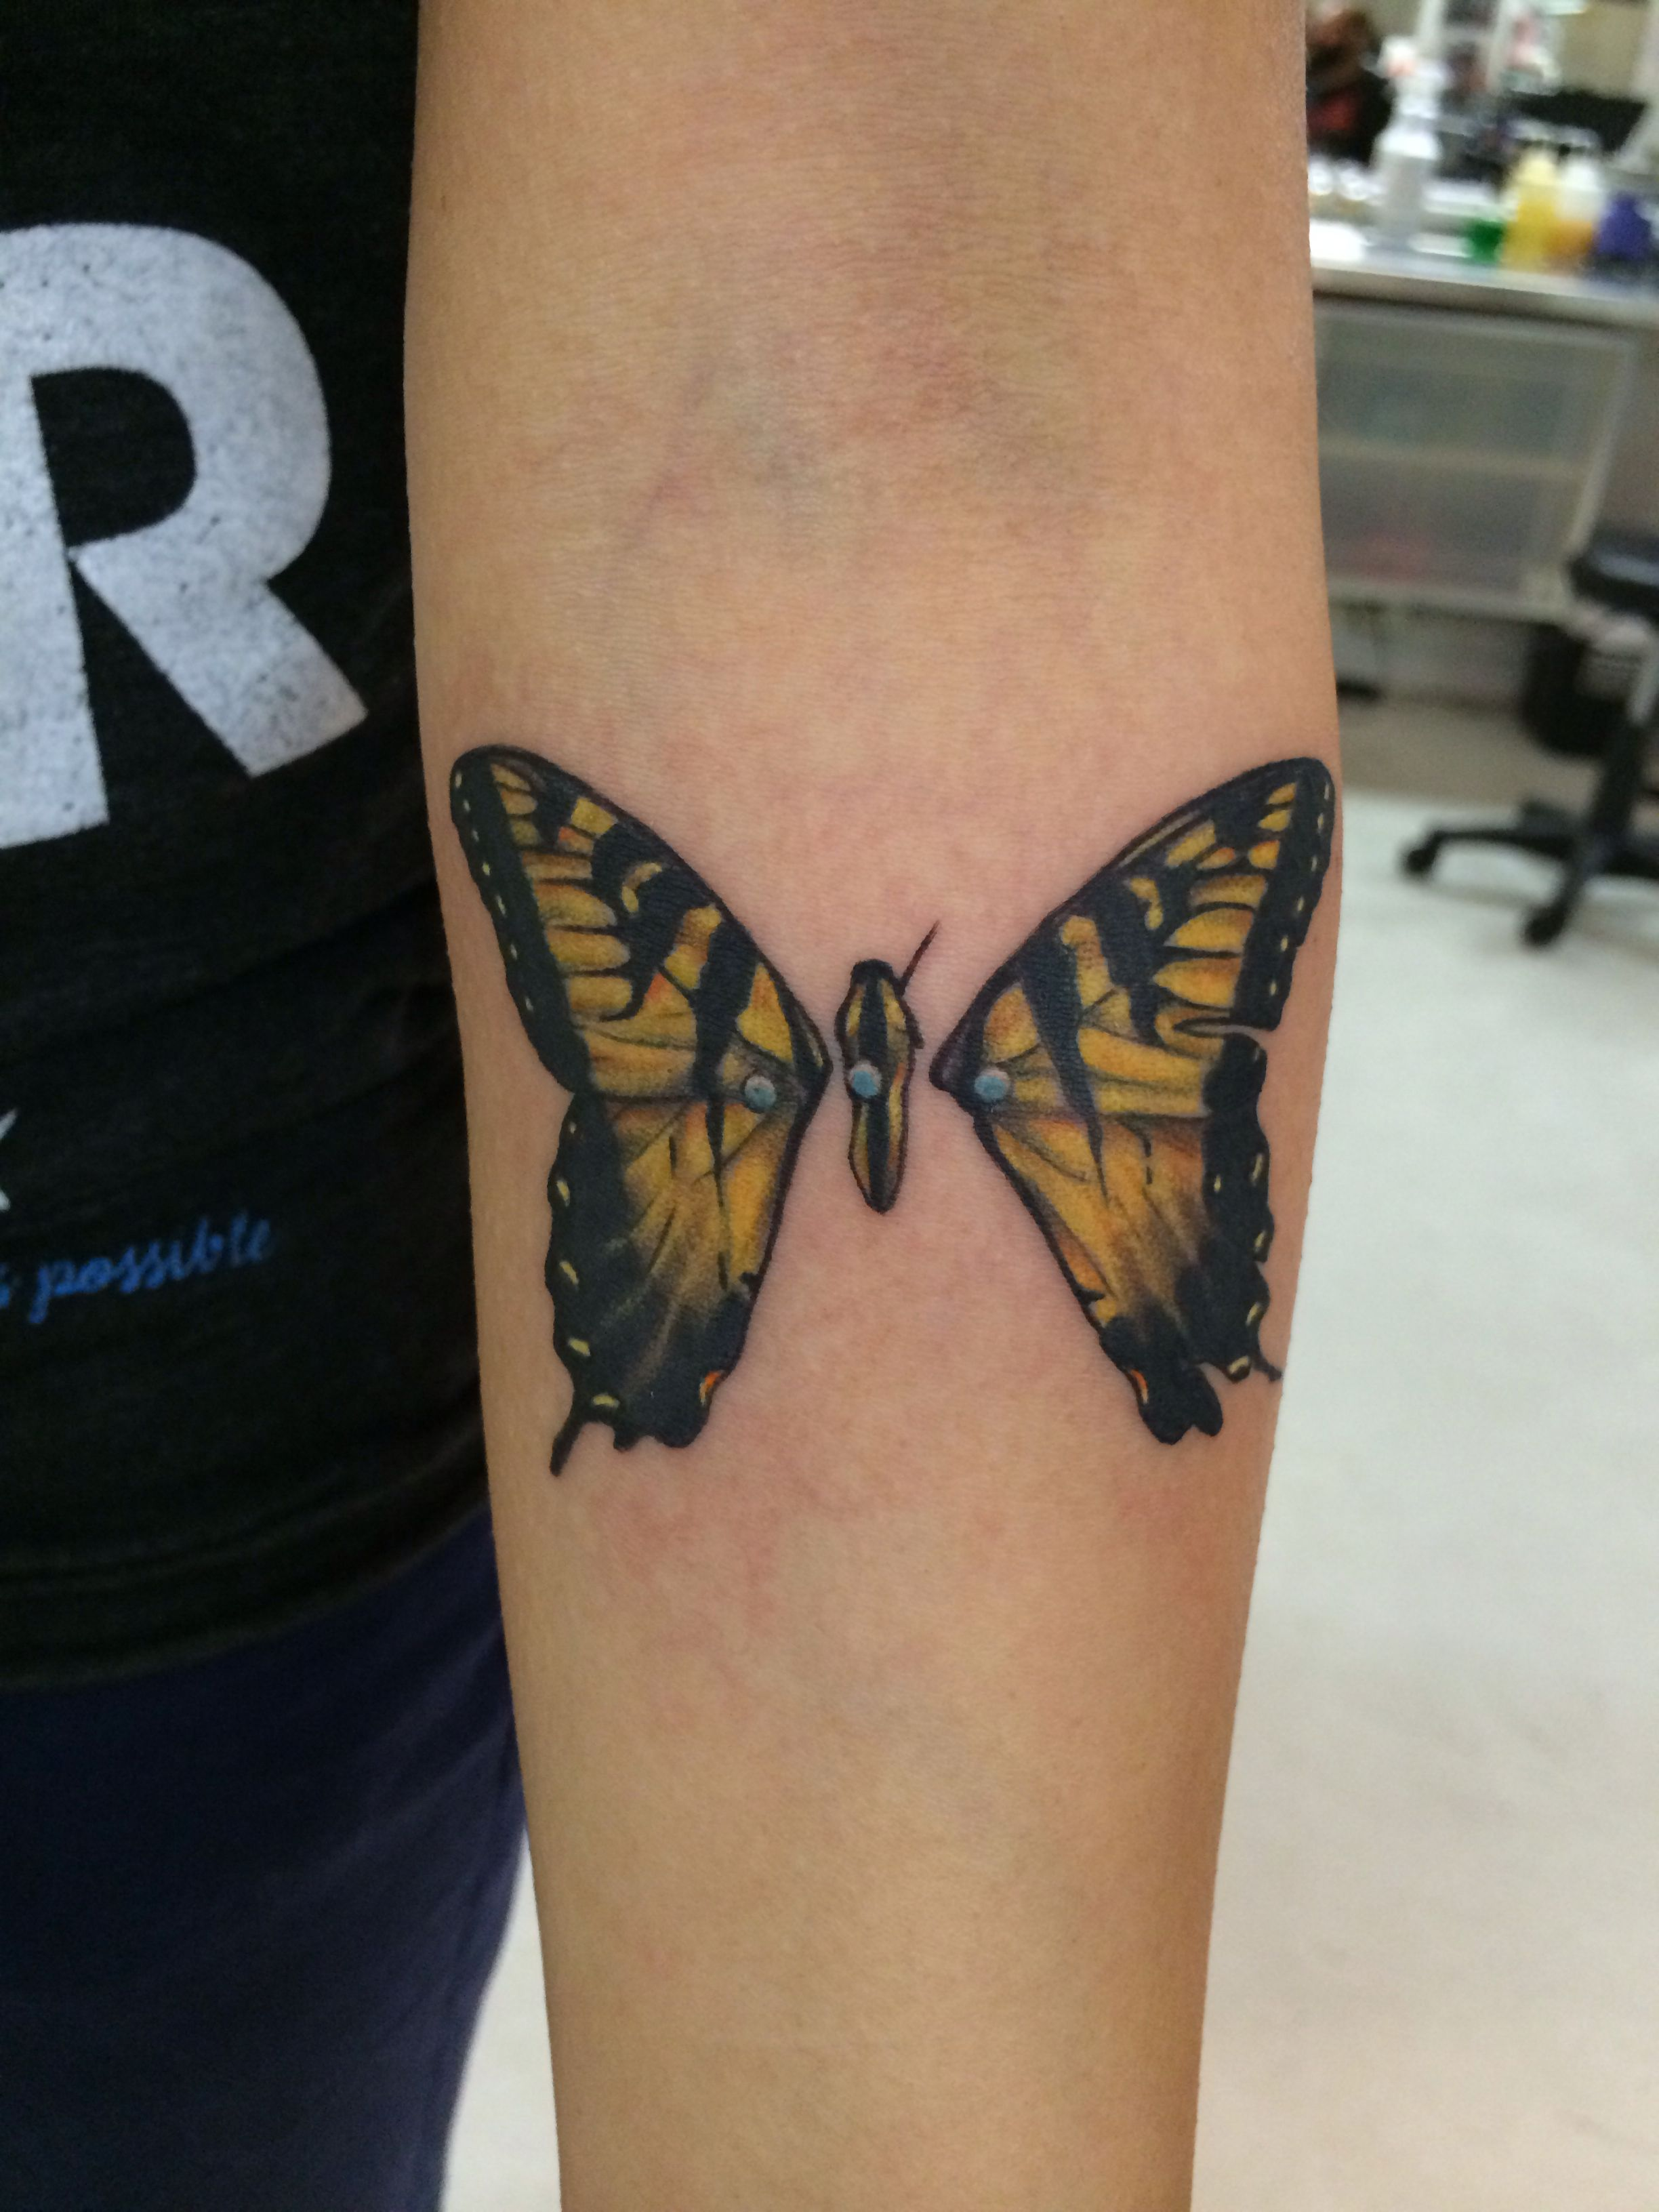 85c2cd59b Got inked with a paramore tattoo - brand new eyes | Tattoos and ...